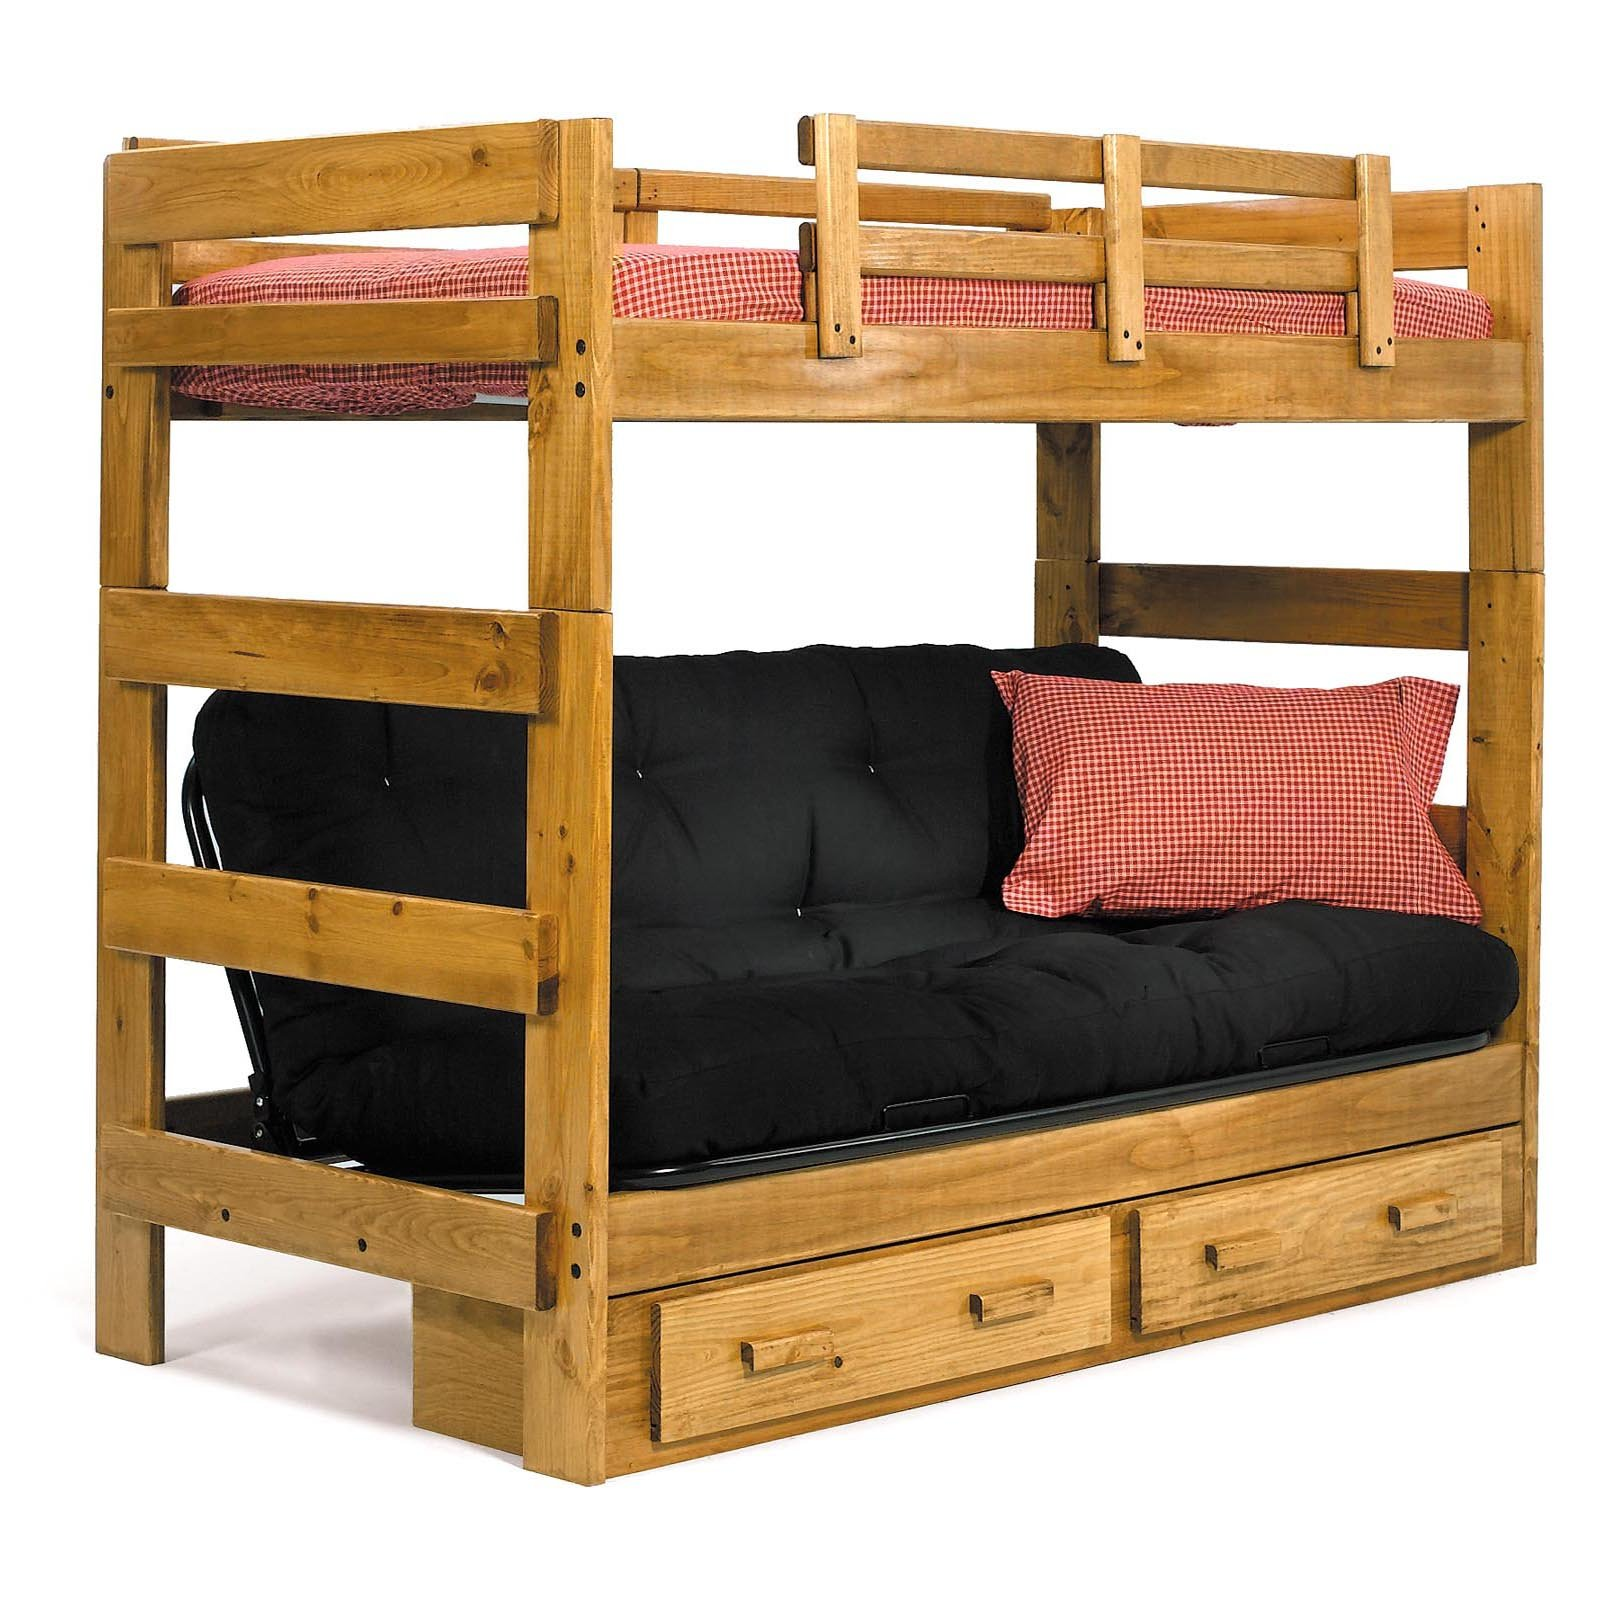 Amazing-Beautiful-And-Unique-Wooden-Storage-In-Bedroom-Design-Ideas-With-Simple-Wooden-Bunk-Bed-With-Black-Sofa-And-Hidden-Storage-For-Best-Bedroom-Furnitures-Design-